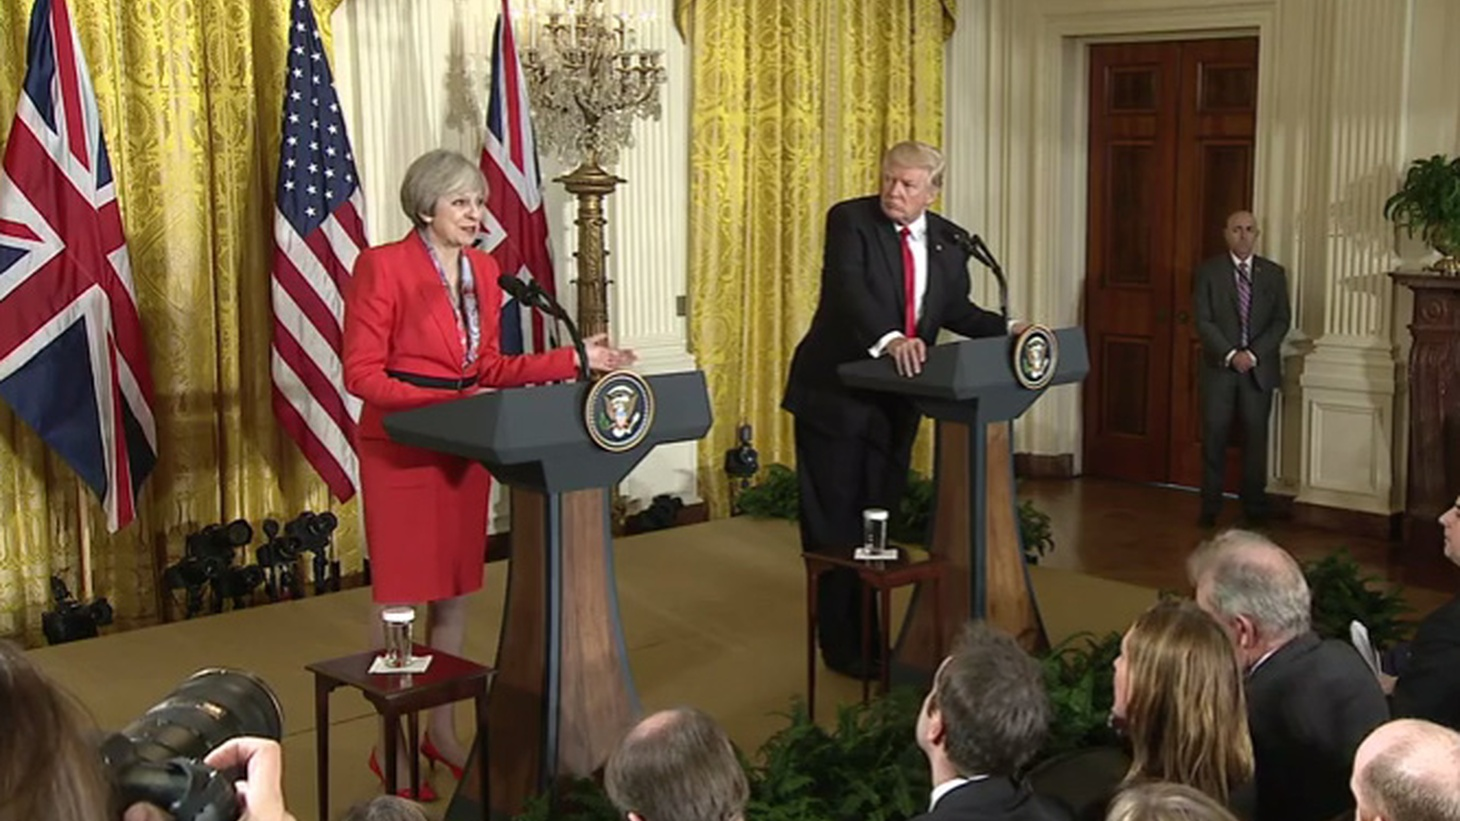 "Theresa May is the first foreign leader to sit down with Donald Trump as Commander in Chief. The British Prime Minister says it's to build on the ""special relationship"" between the US and the UK. There's even talk of a new Trans-Atlantic trade deal. But how's that going to fly in a post-Brexit world, with a White House bent on ""buy American, hire American?"" Guest host Barbara Bogaev looks at how the US withdrawing from global treaties and embracing Russia complicates the relationship."